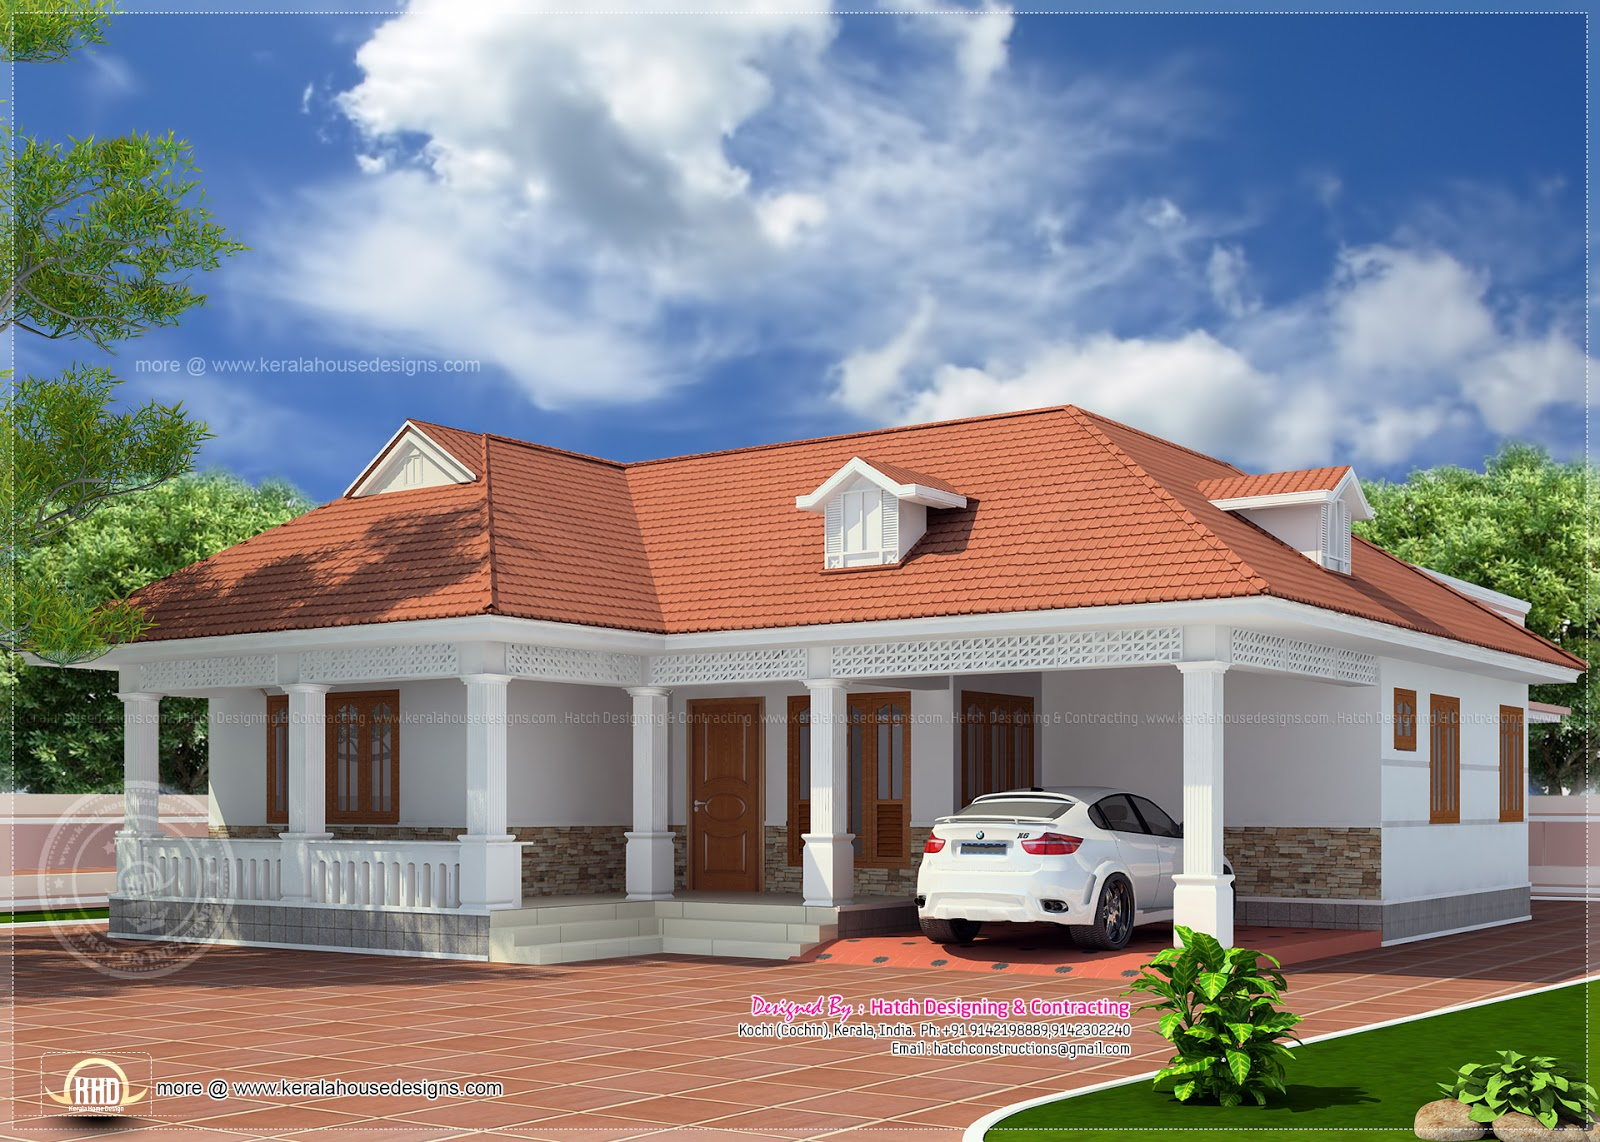 1850 kerala style home elevation kerala home for Kerala home designs pictures